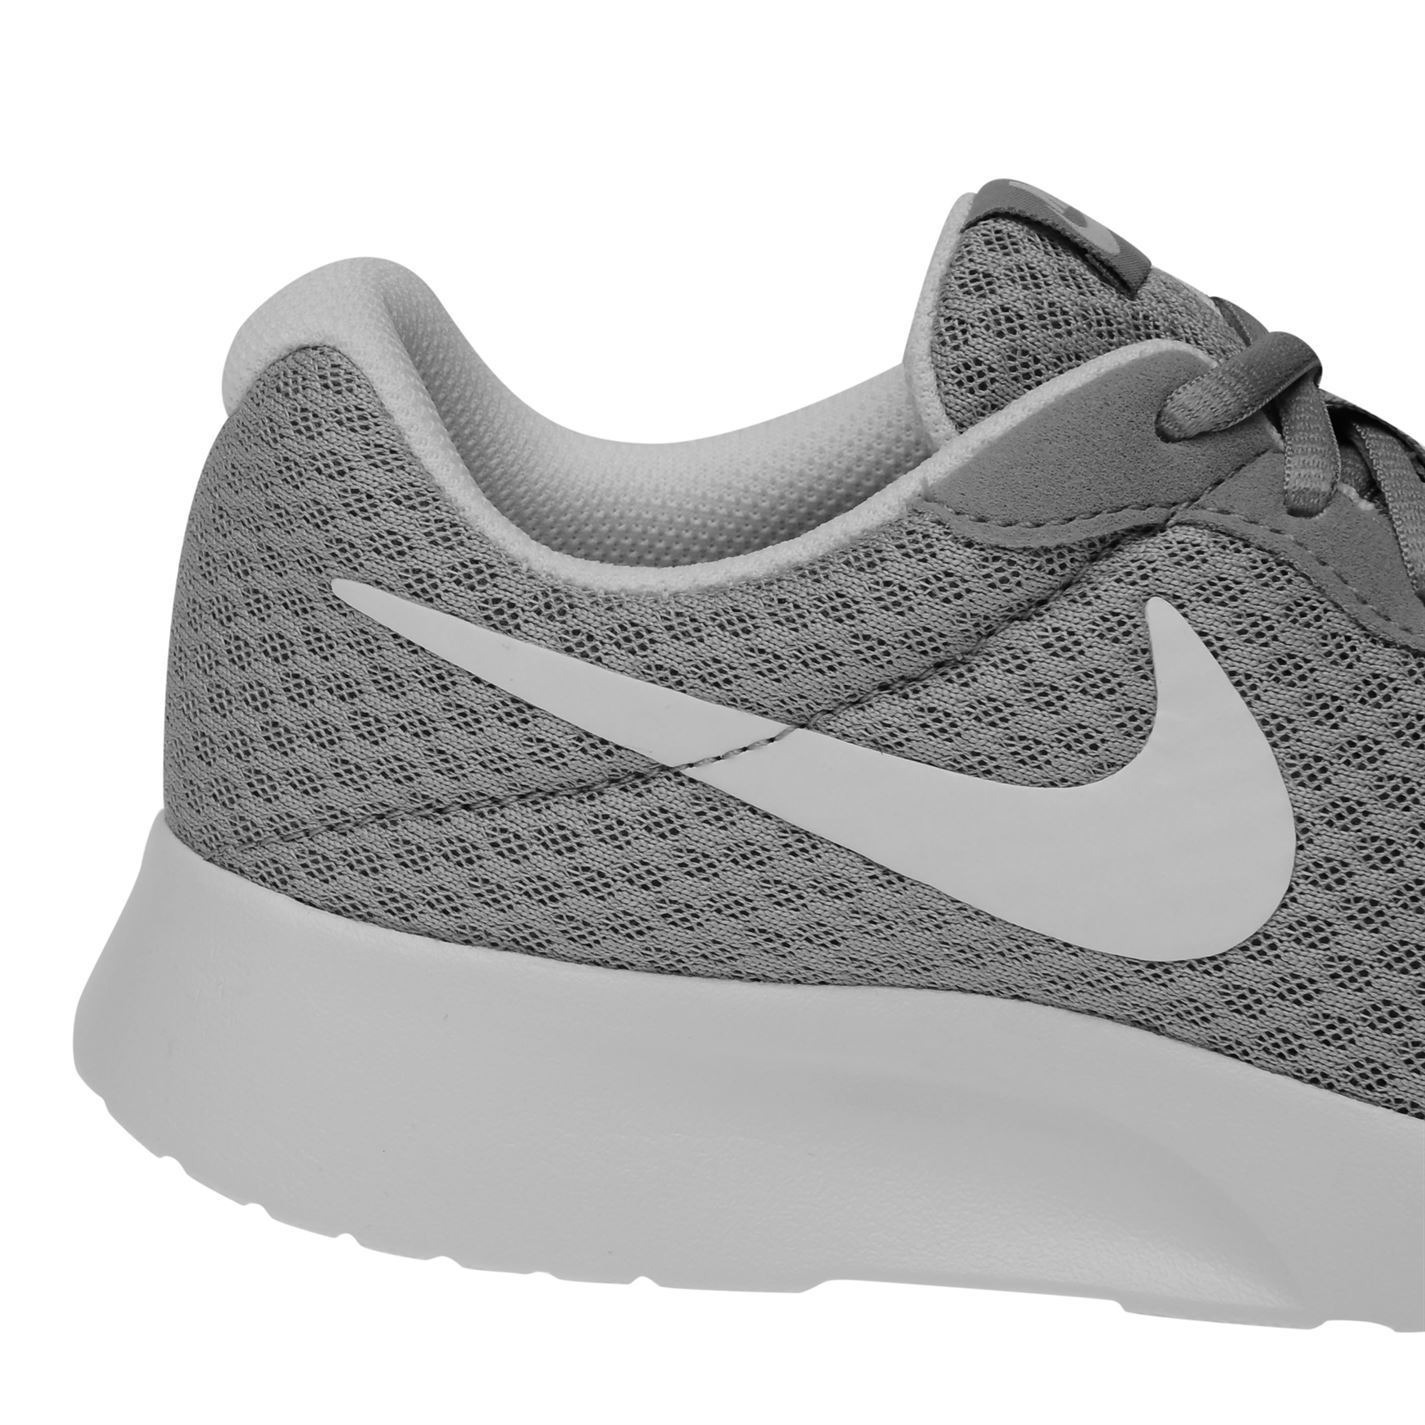 Nike Tanjun Training Shoes Womens Grey White Gym Fitness Trainers Sneakers 5c13770c667